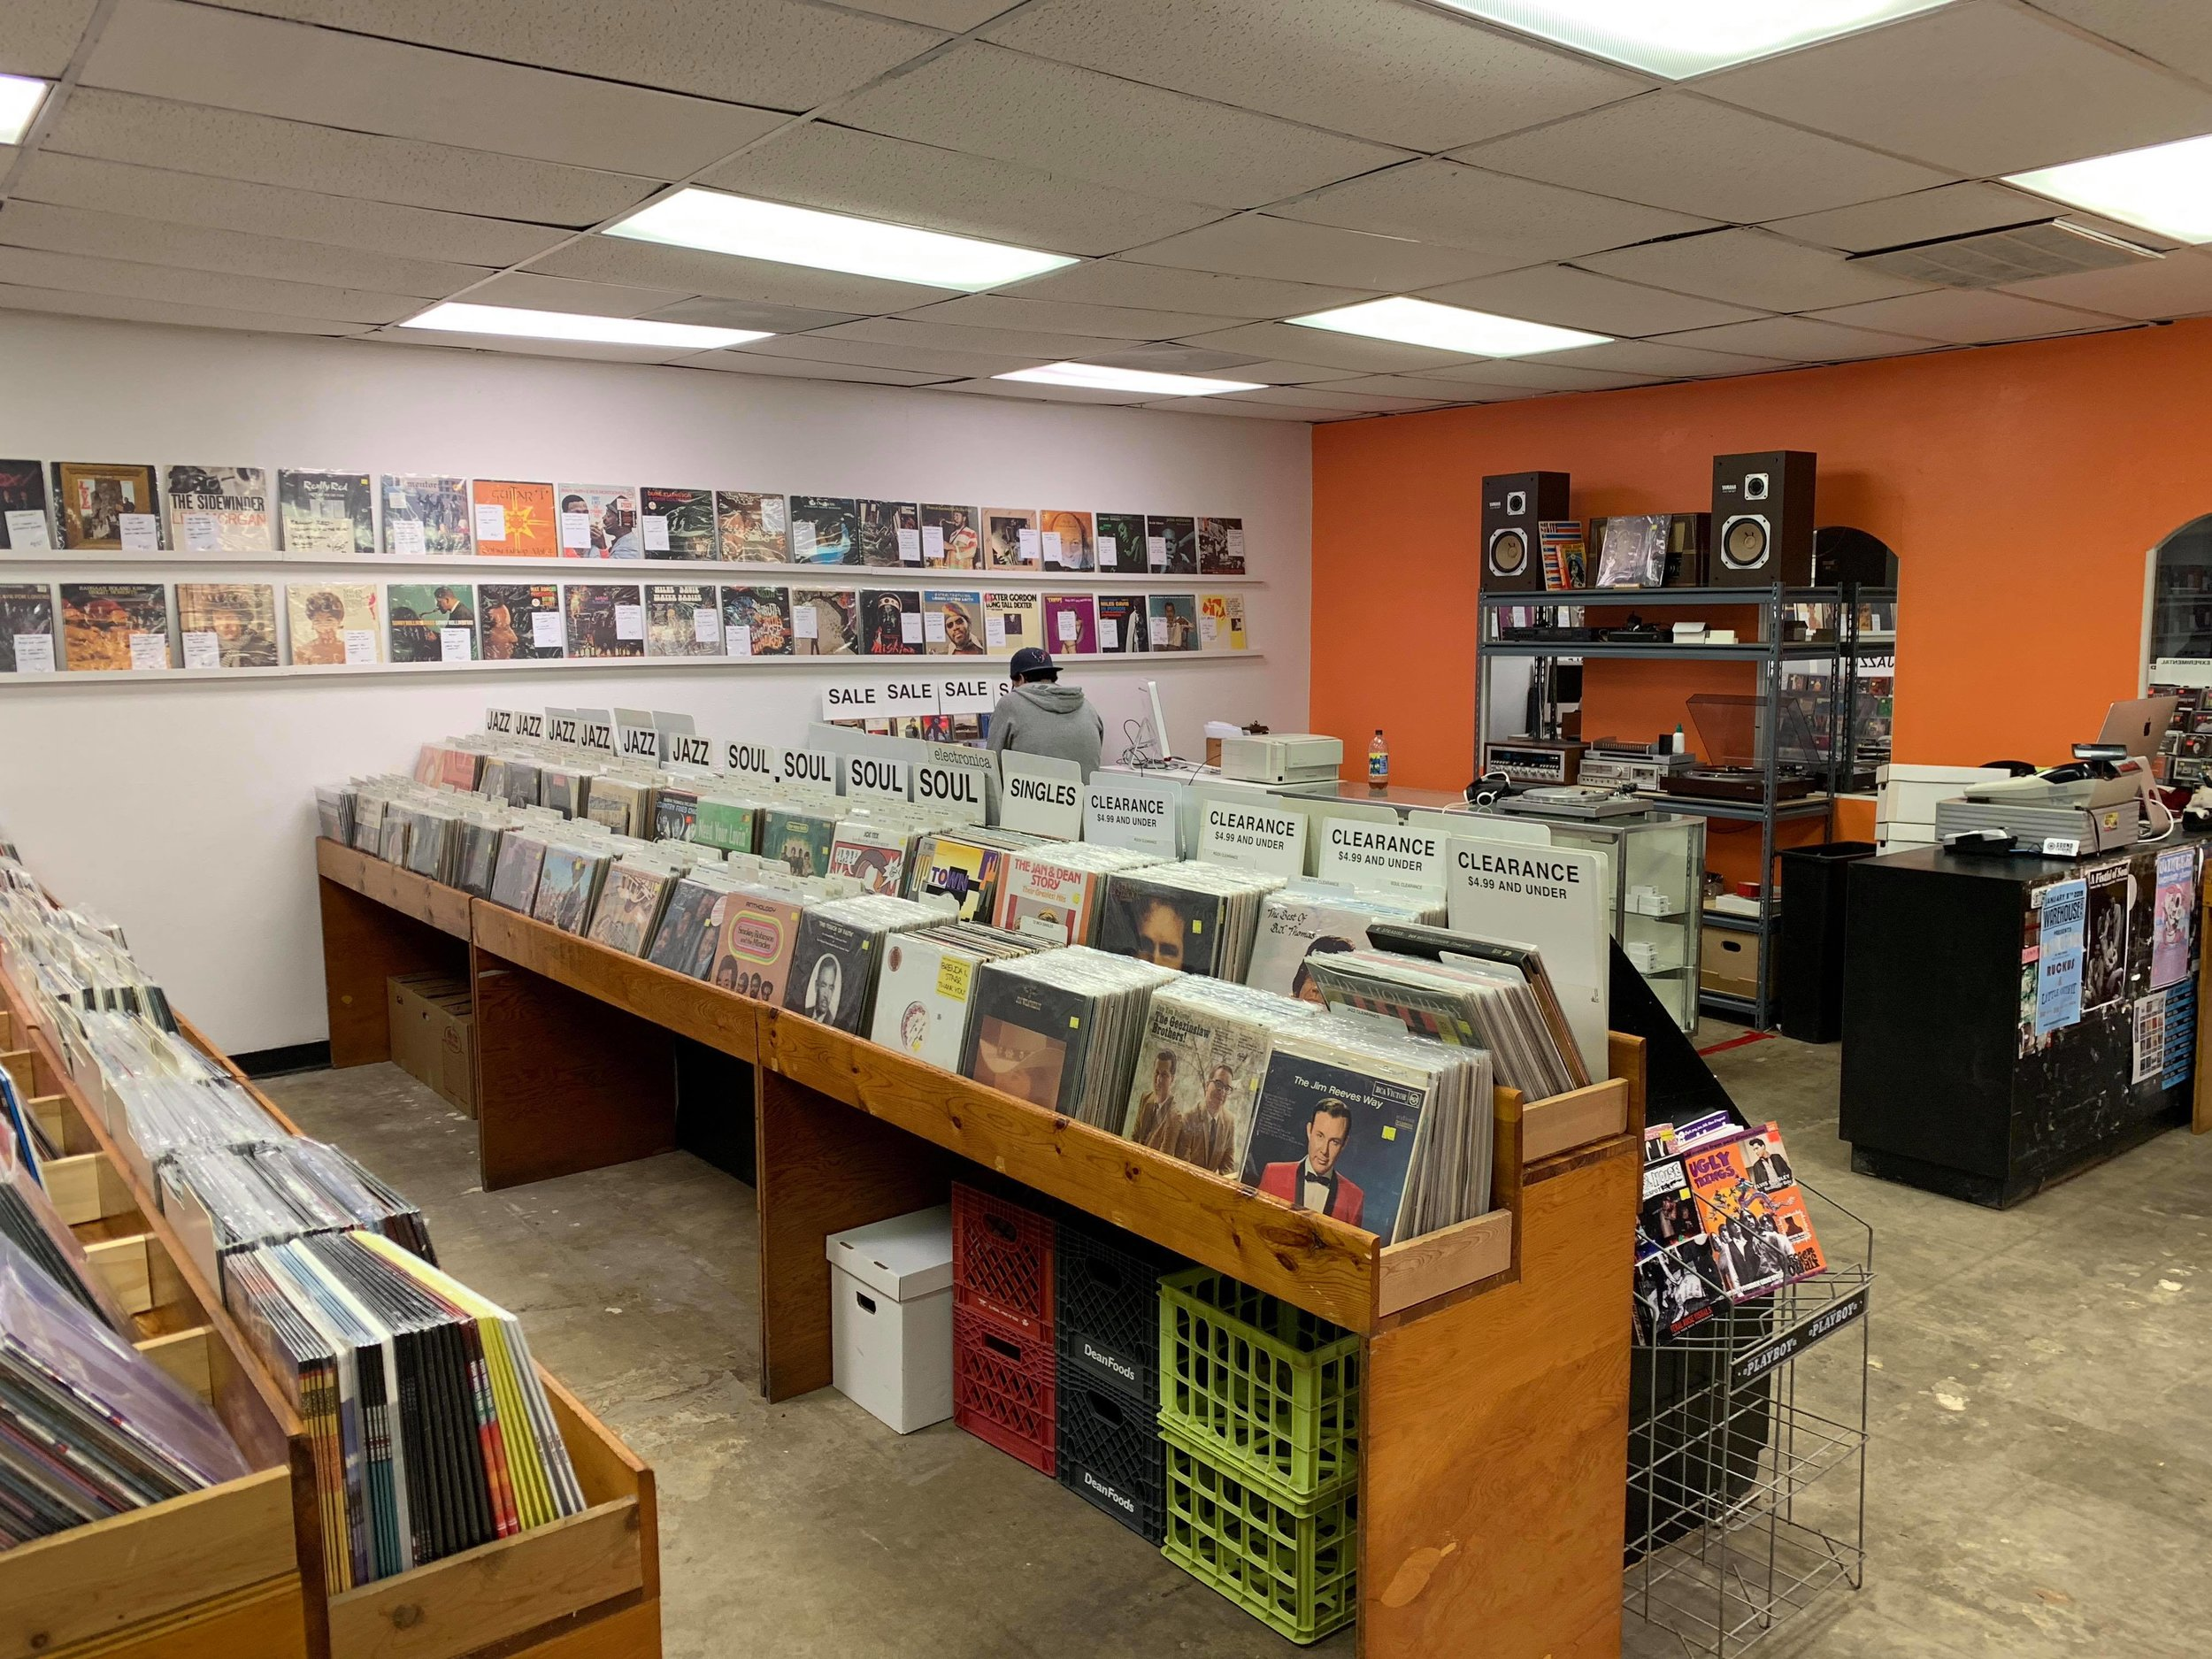 SOUND EXCHANGE - 101 N. Milby St. Houston, Texas 77003Used CDs & vinyl from rock, blues, punk & local artists, plus turntables and local shows.